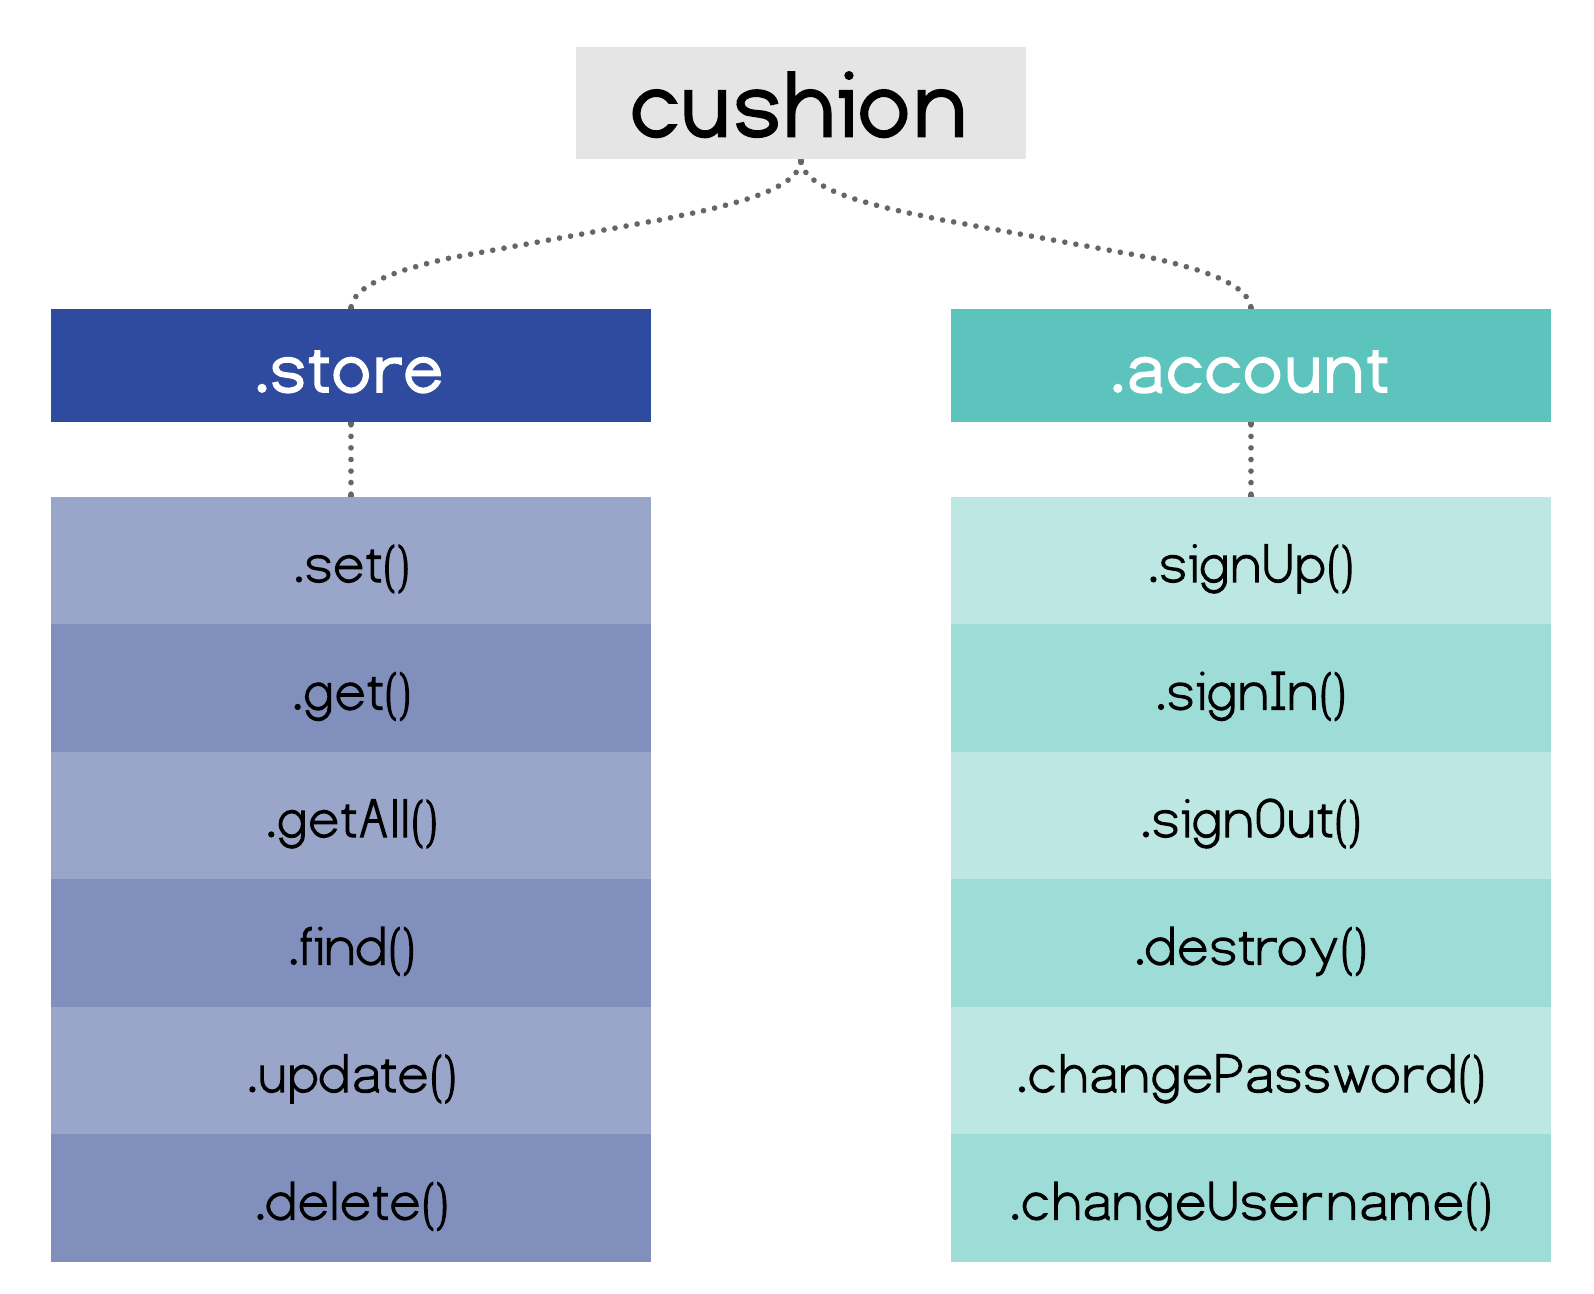 CushionAPI